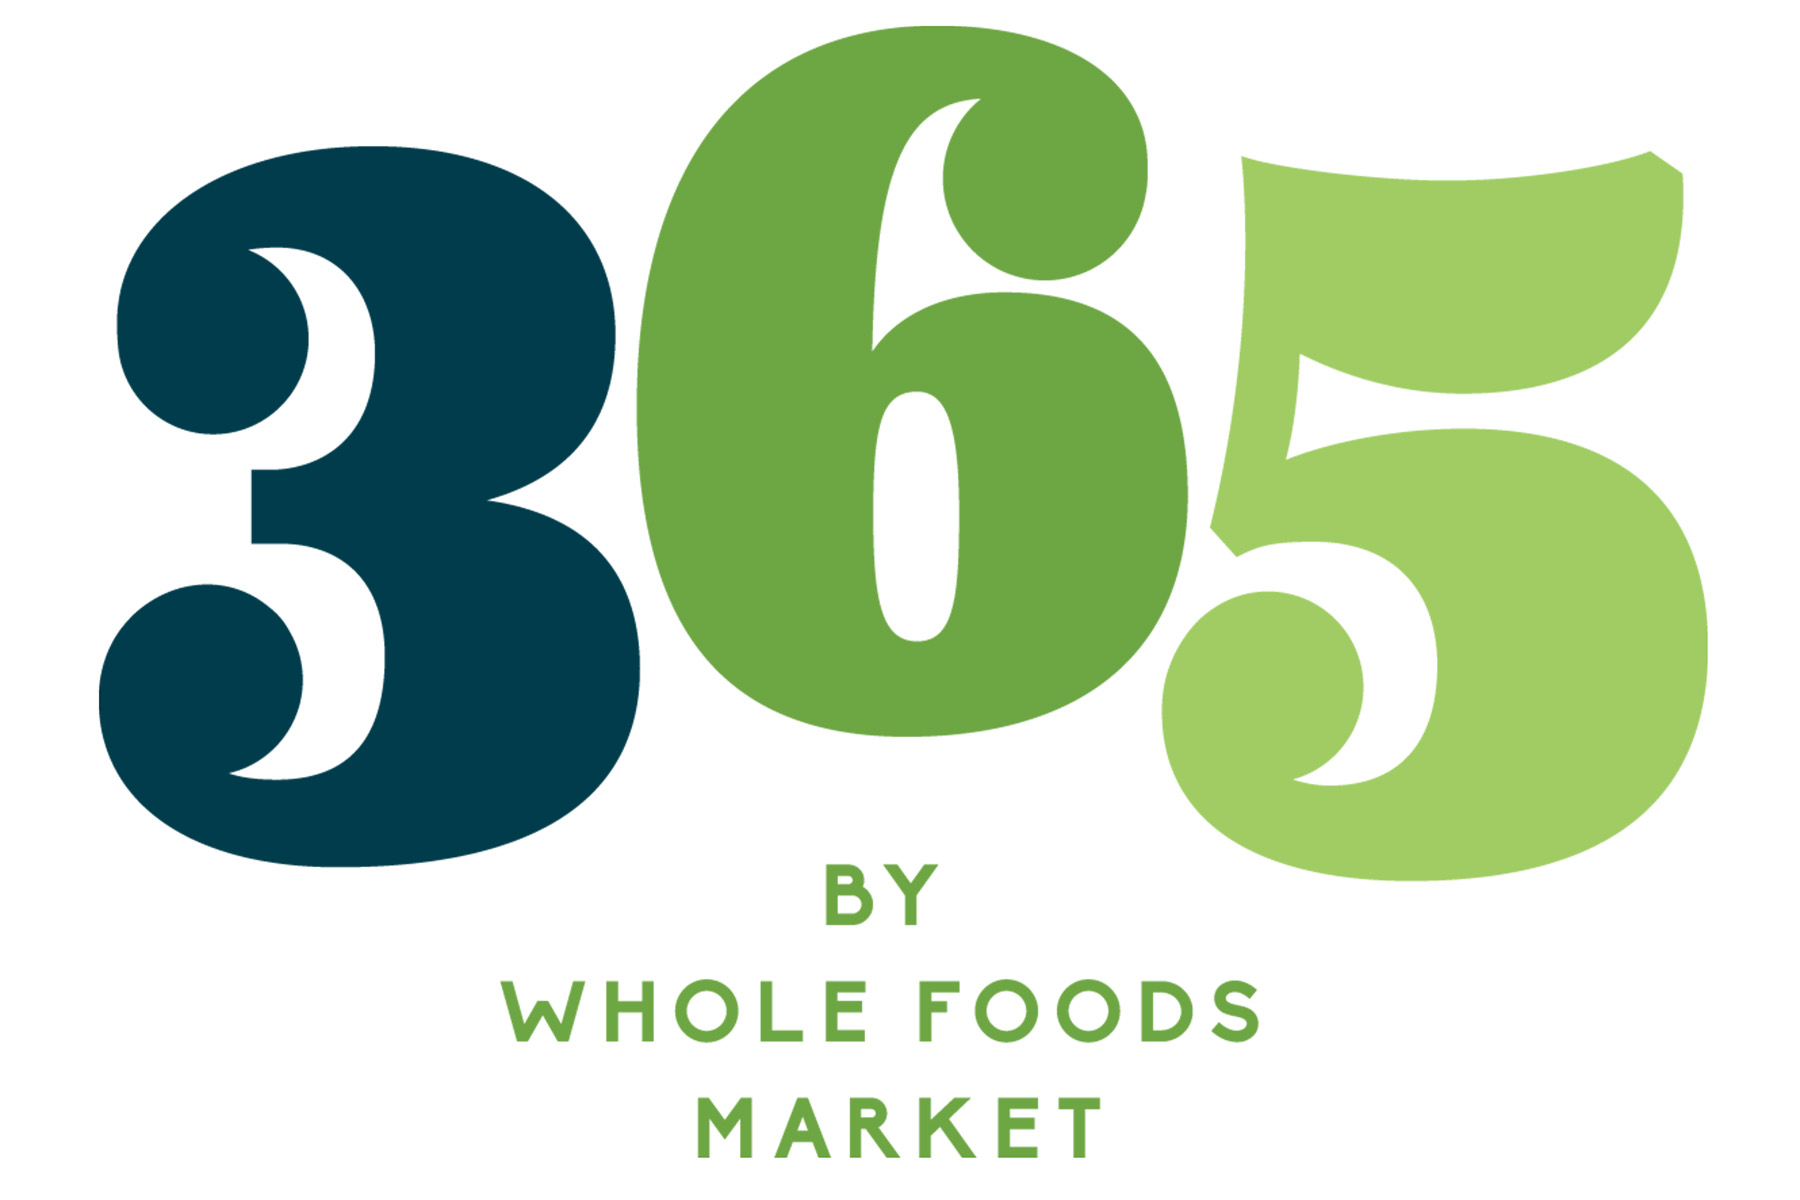 365 By Whole Foods Market logo